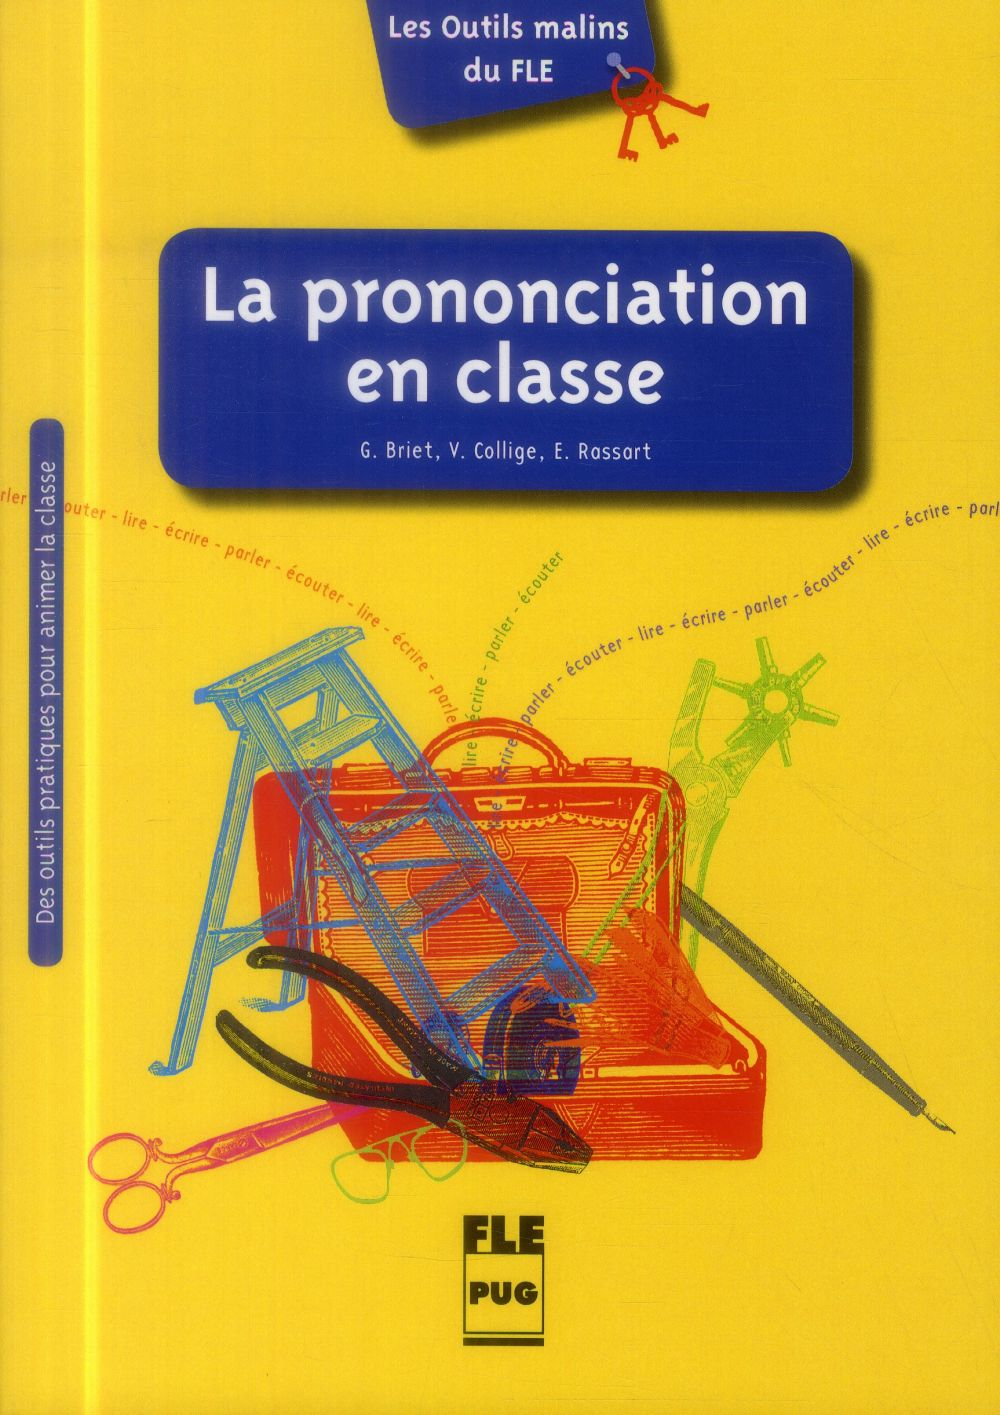 La prononciation en classe